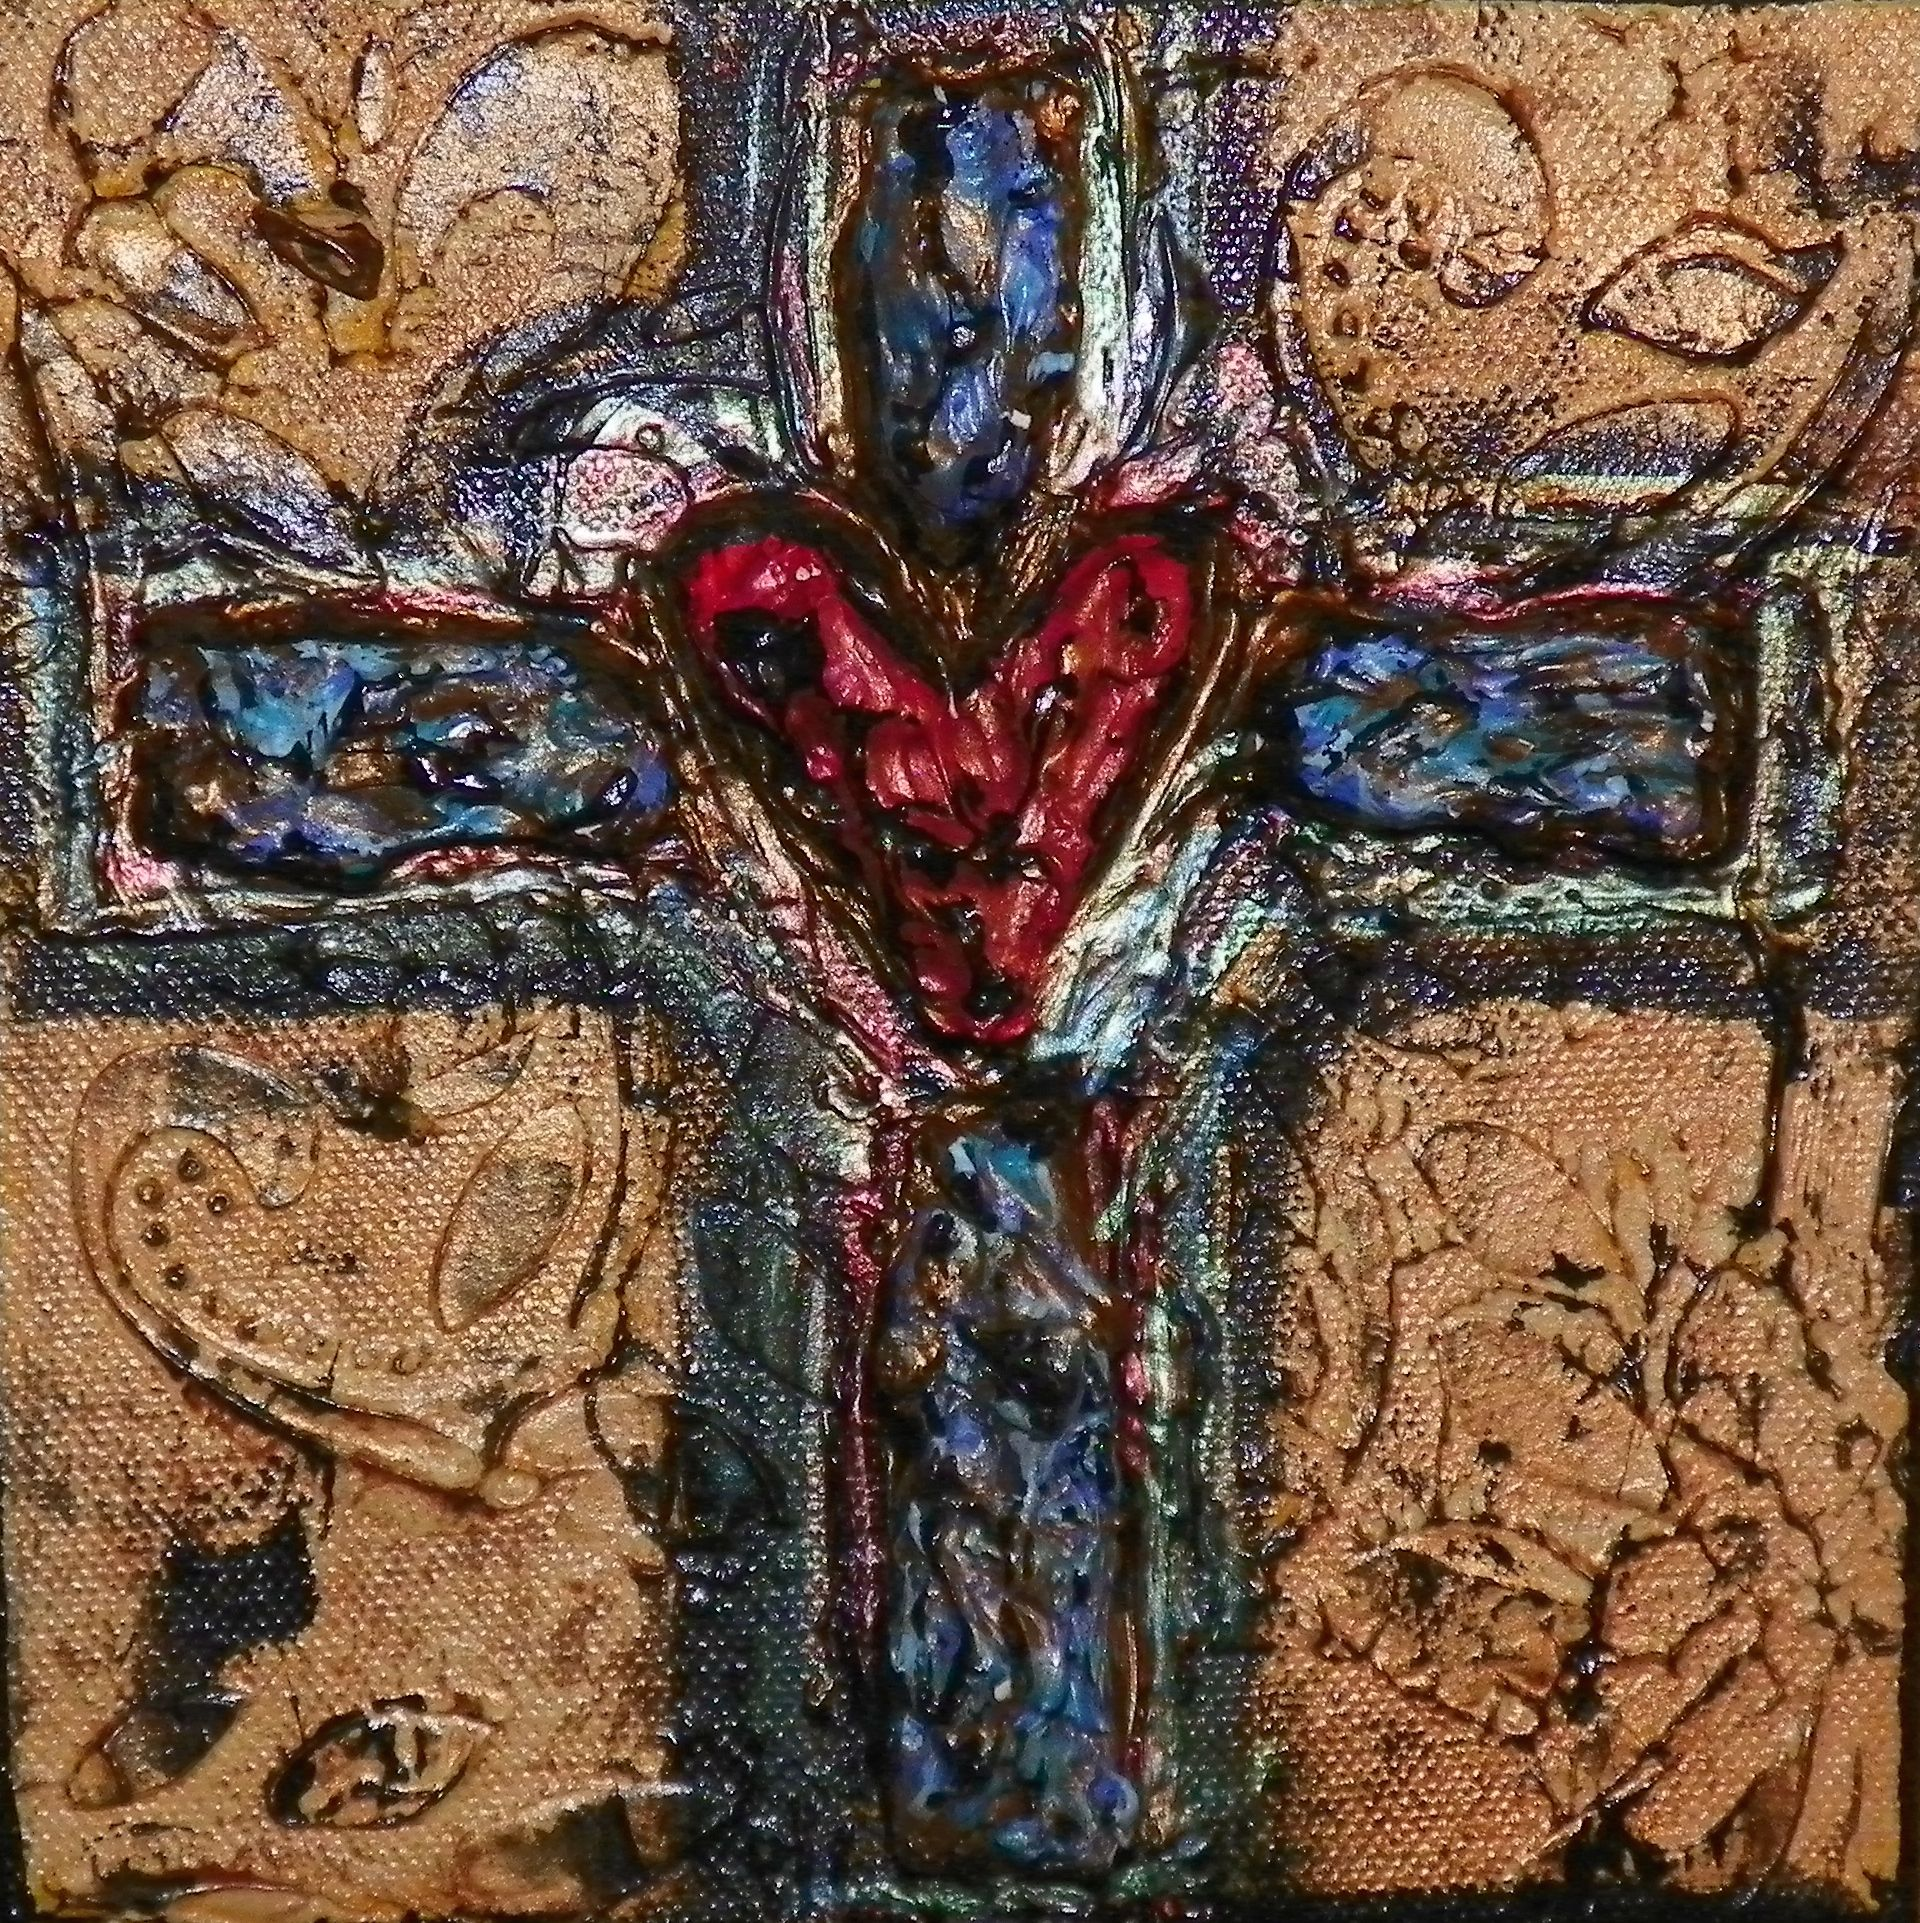 Contemporary Christian Handcrafted Home Décor & Artwork in